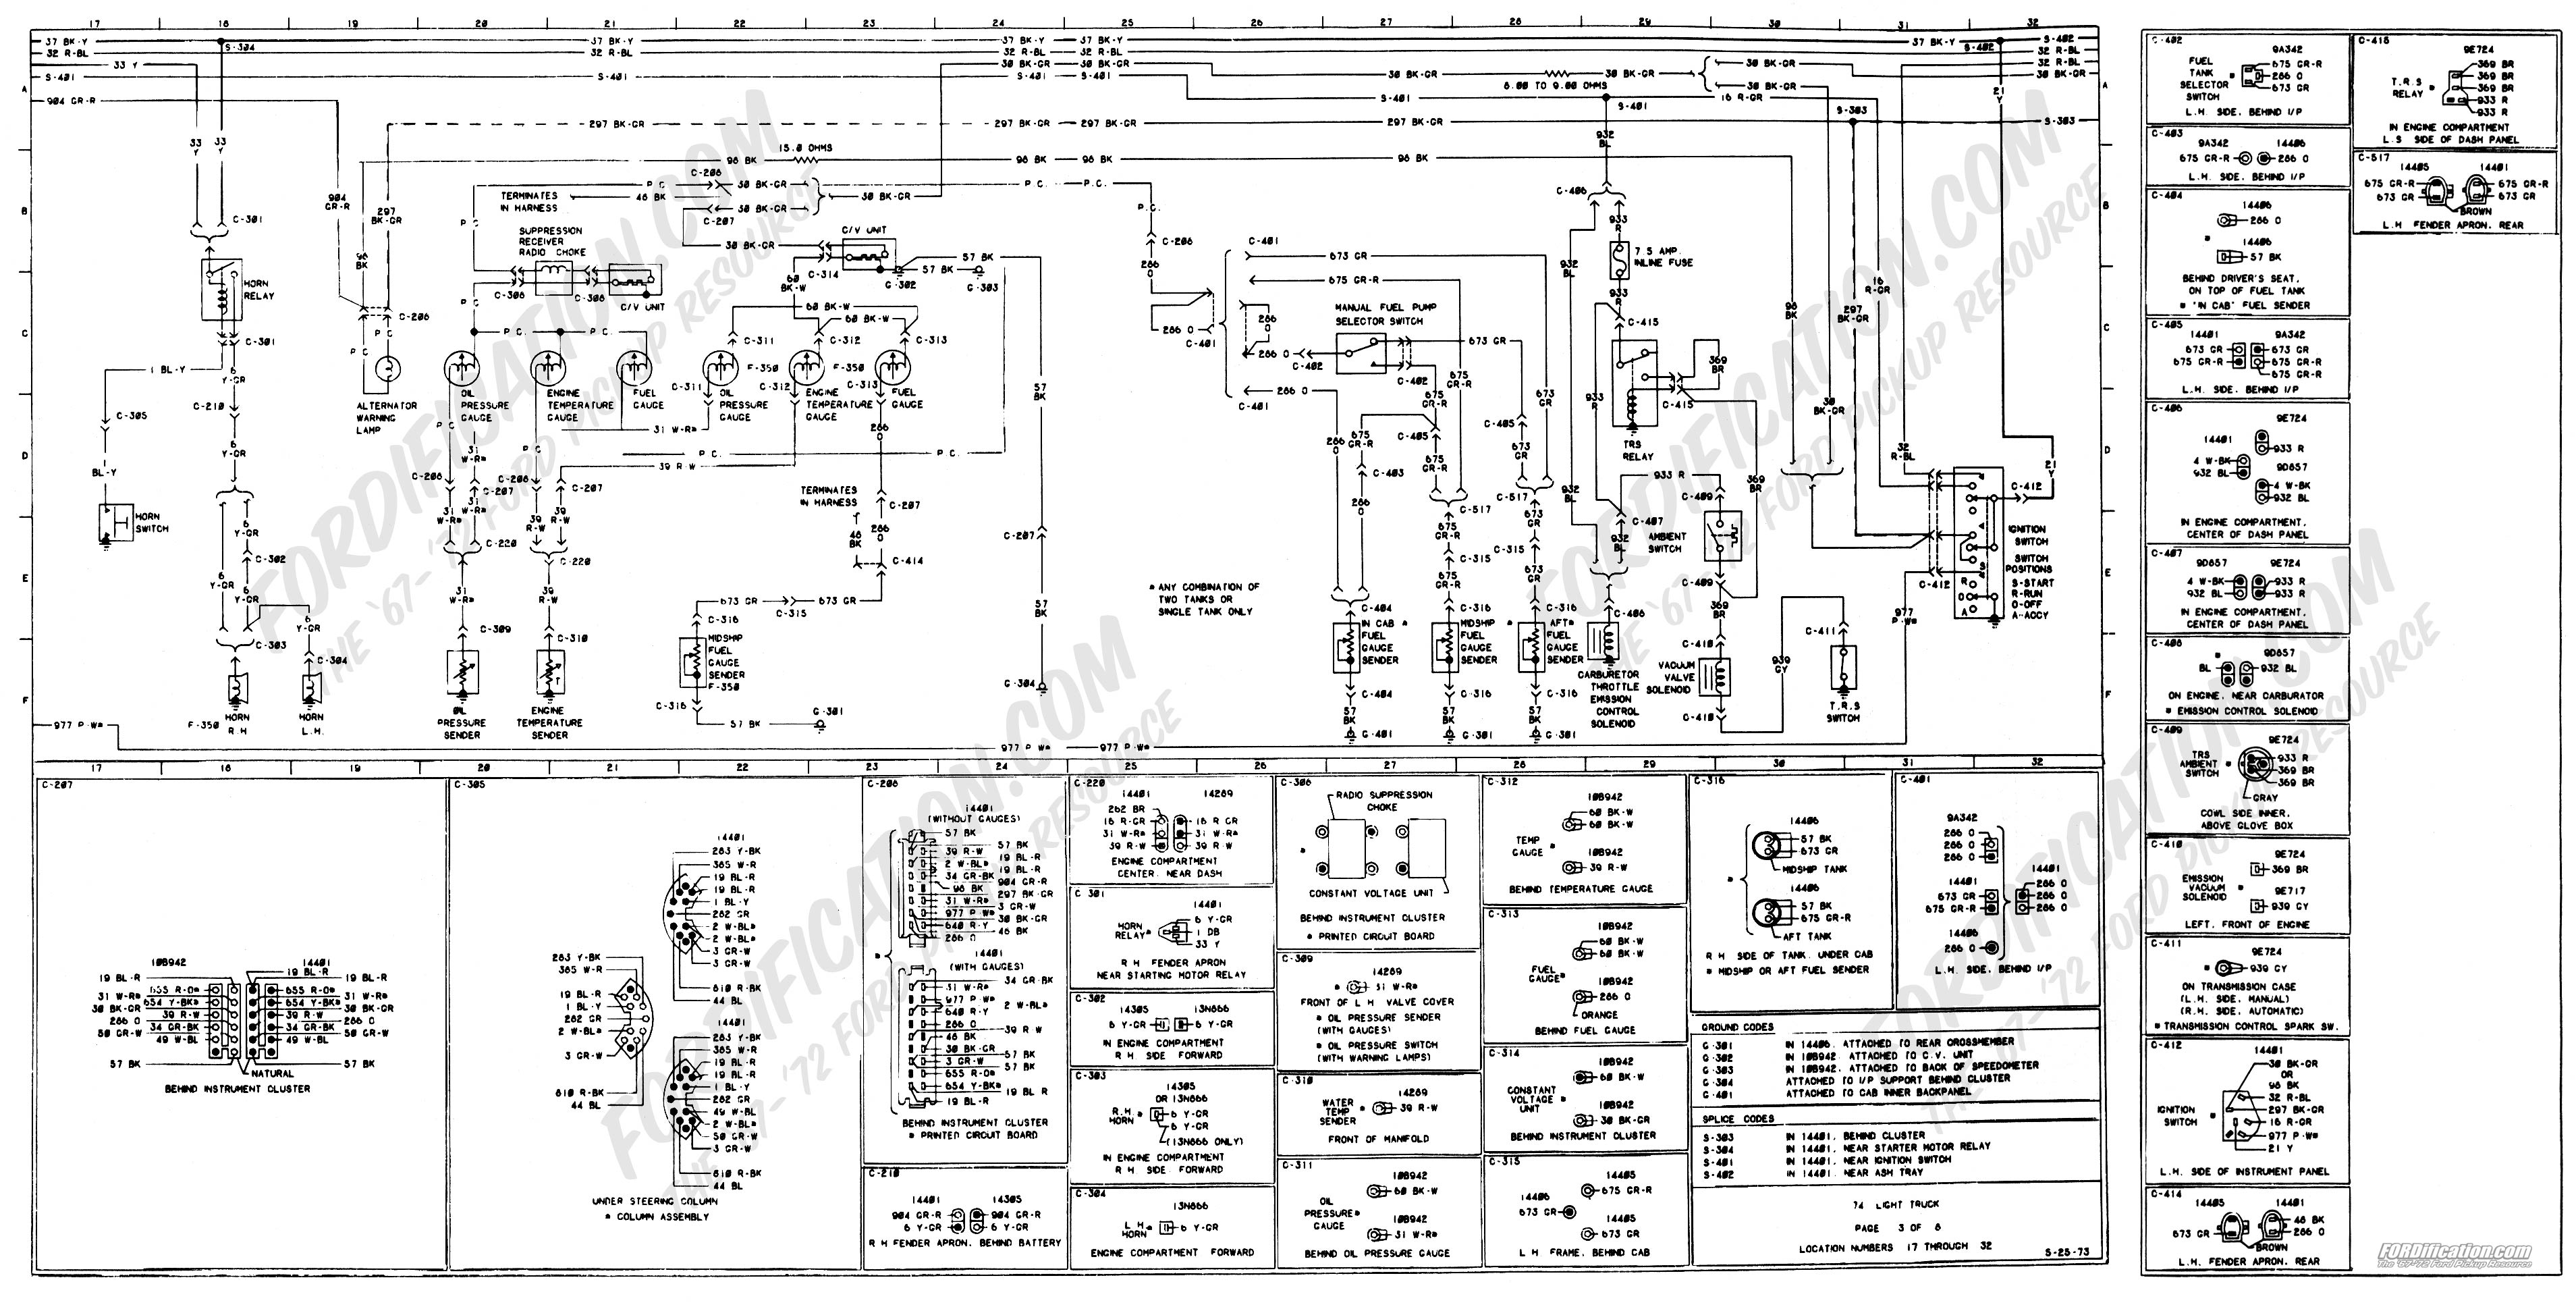 1973 1979 ford truck wiring diagrams schematics fordification net rh fordification net Ford Ranger Radio Wiring Diagram Ford Ranger Radio Wiring Diagram